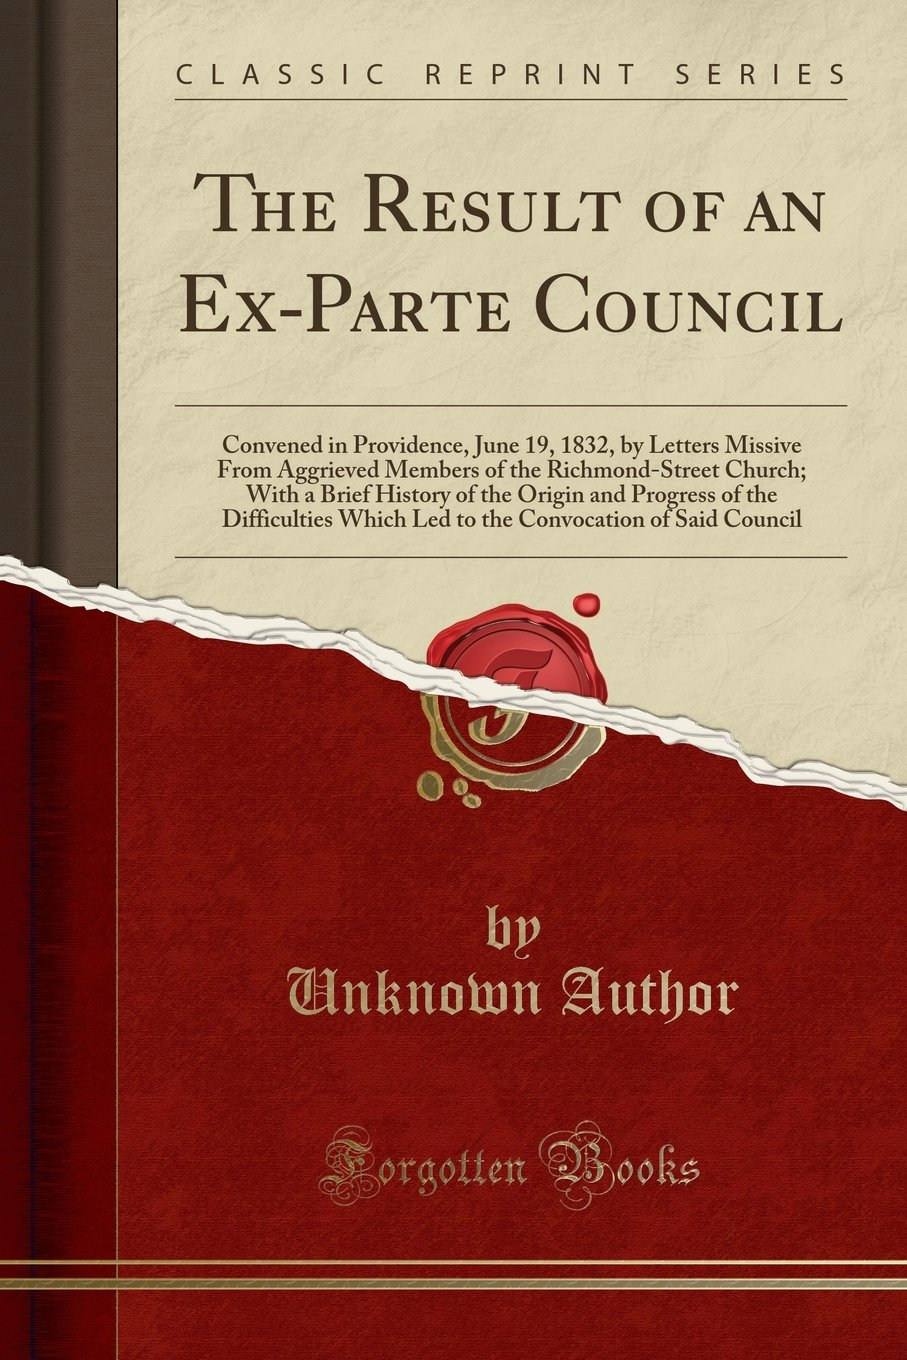 The Result of an Ex-Parte Council: Convened in Providence, June 19, 1832, by Letters Missive From Aggrieved Members of the Richmond-Street Church; ... Which Led to the Convocation of Said Cou PDF